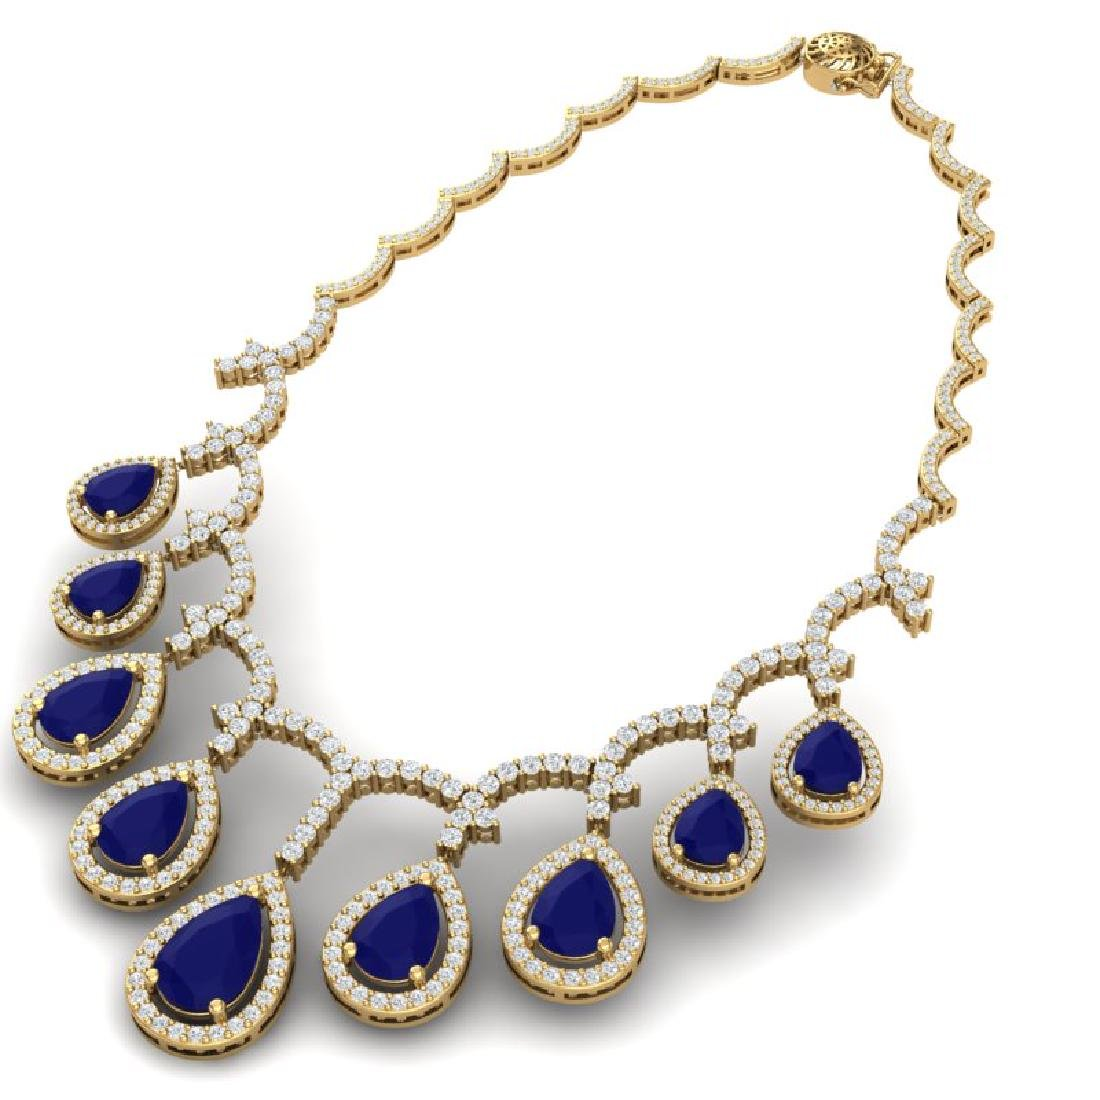 31.5 CTW Royalty Sapphire & VS Diamond Necklace 18K - 3